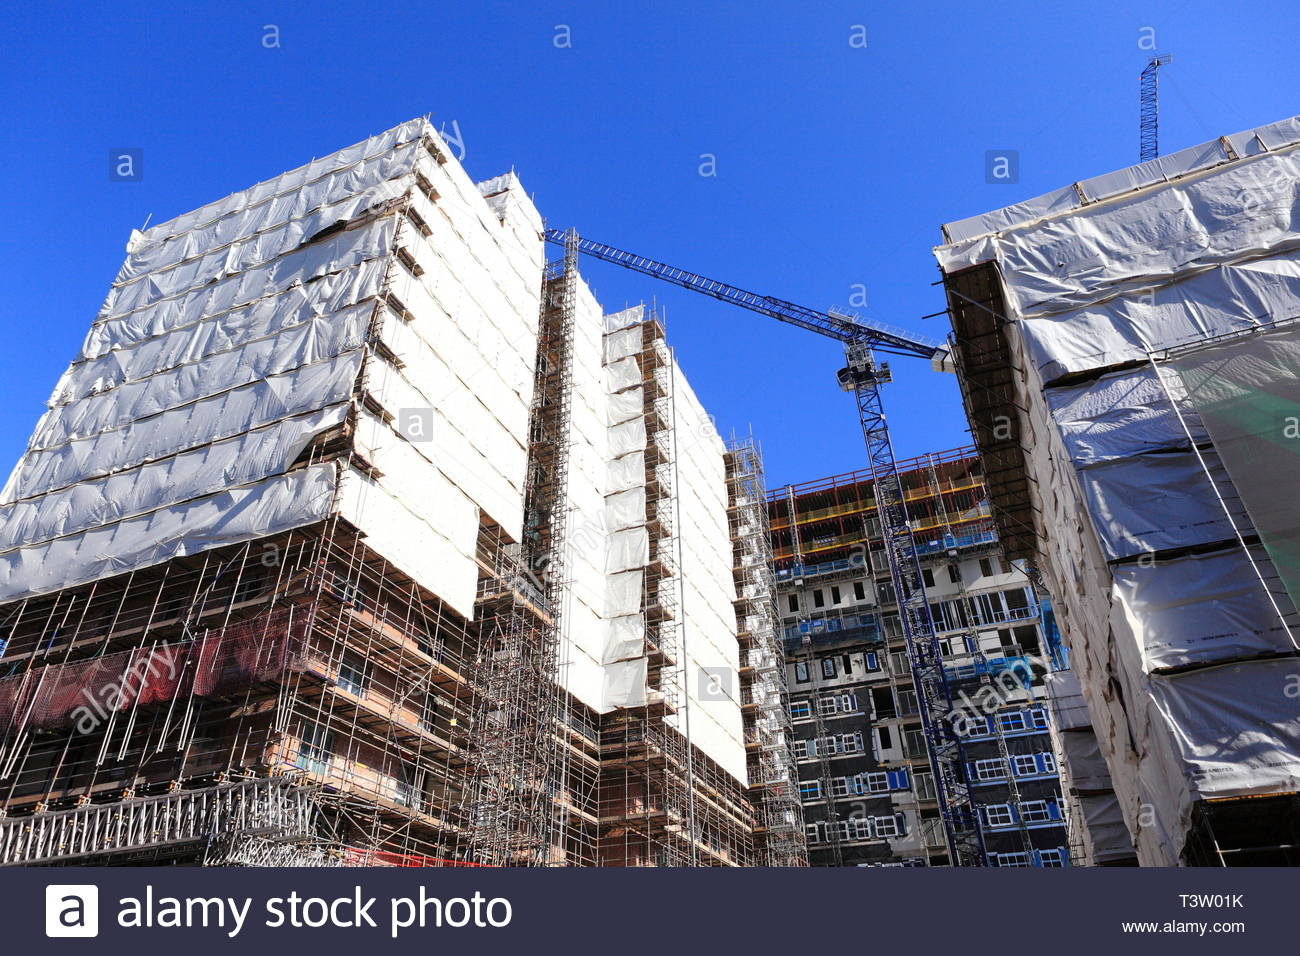 Construction site for luxury apartments with crane in background at Manchester UK - Stock Image